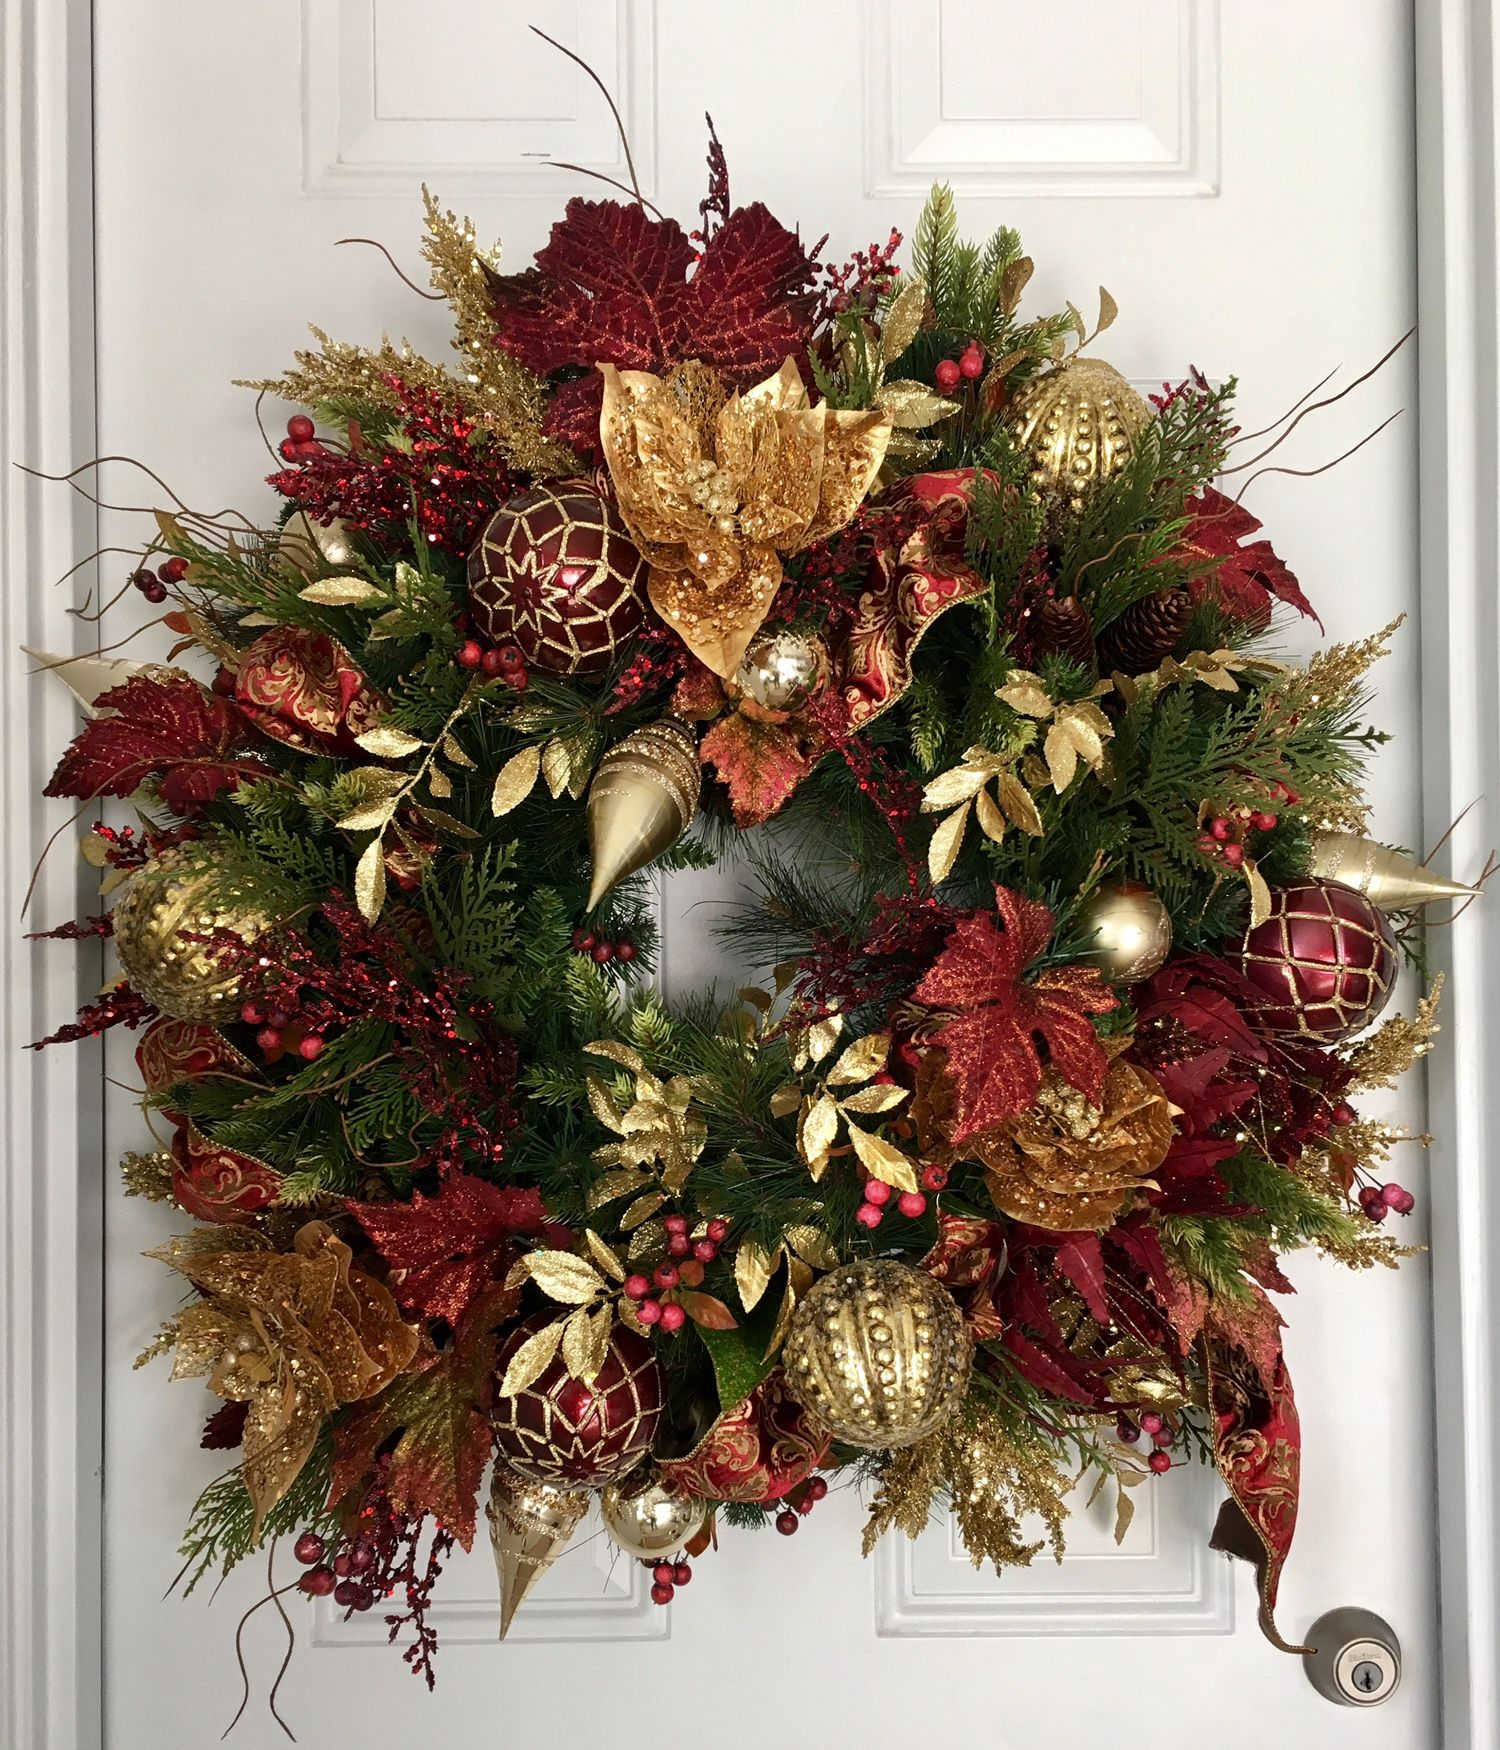 28 30 Christmas Garland Wreath Filled With Rich Burgundy And Gold